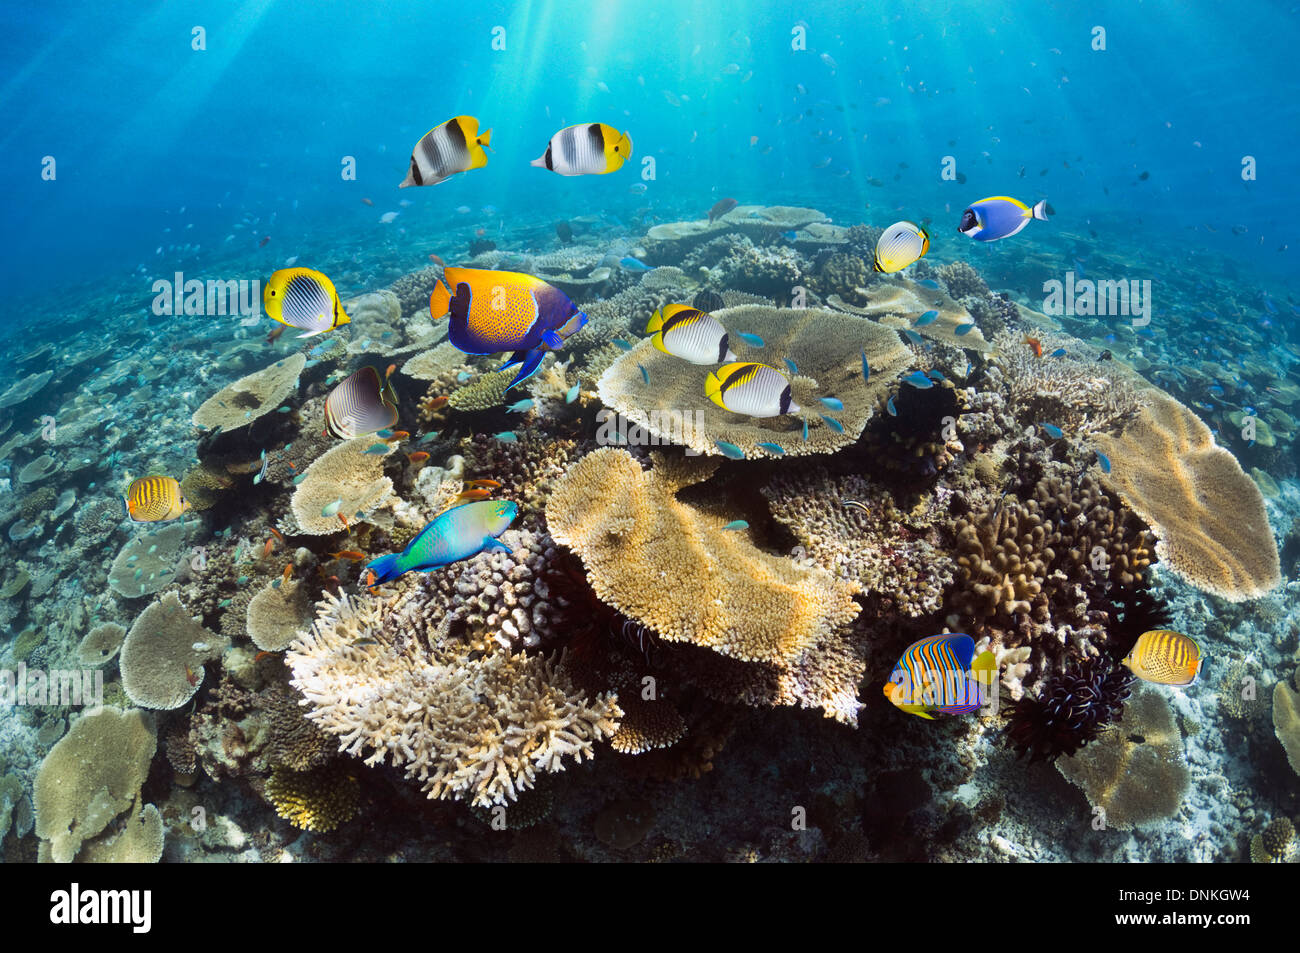 Coral reef with table corals (Acropora sp.) and tropical reef fish. Maldives. - Stock Image